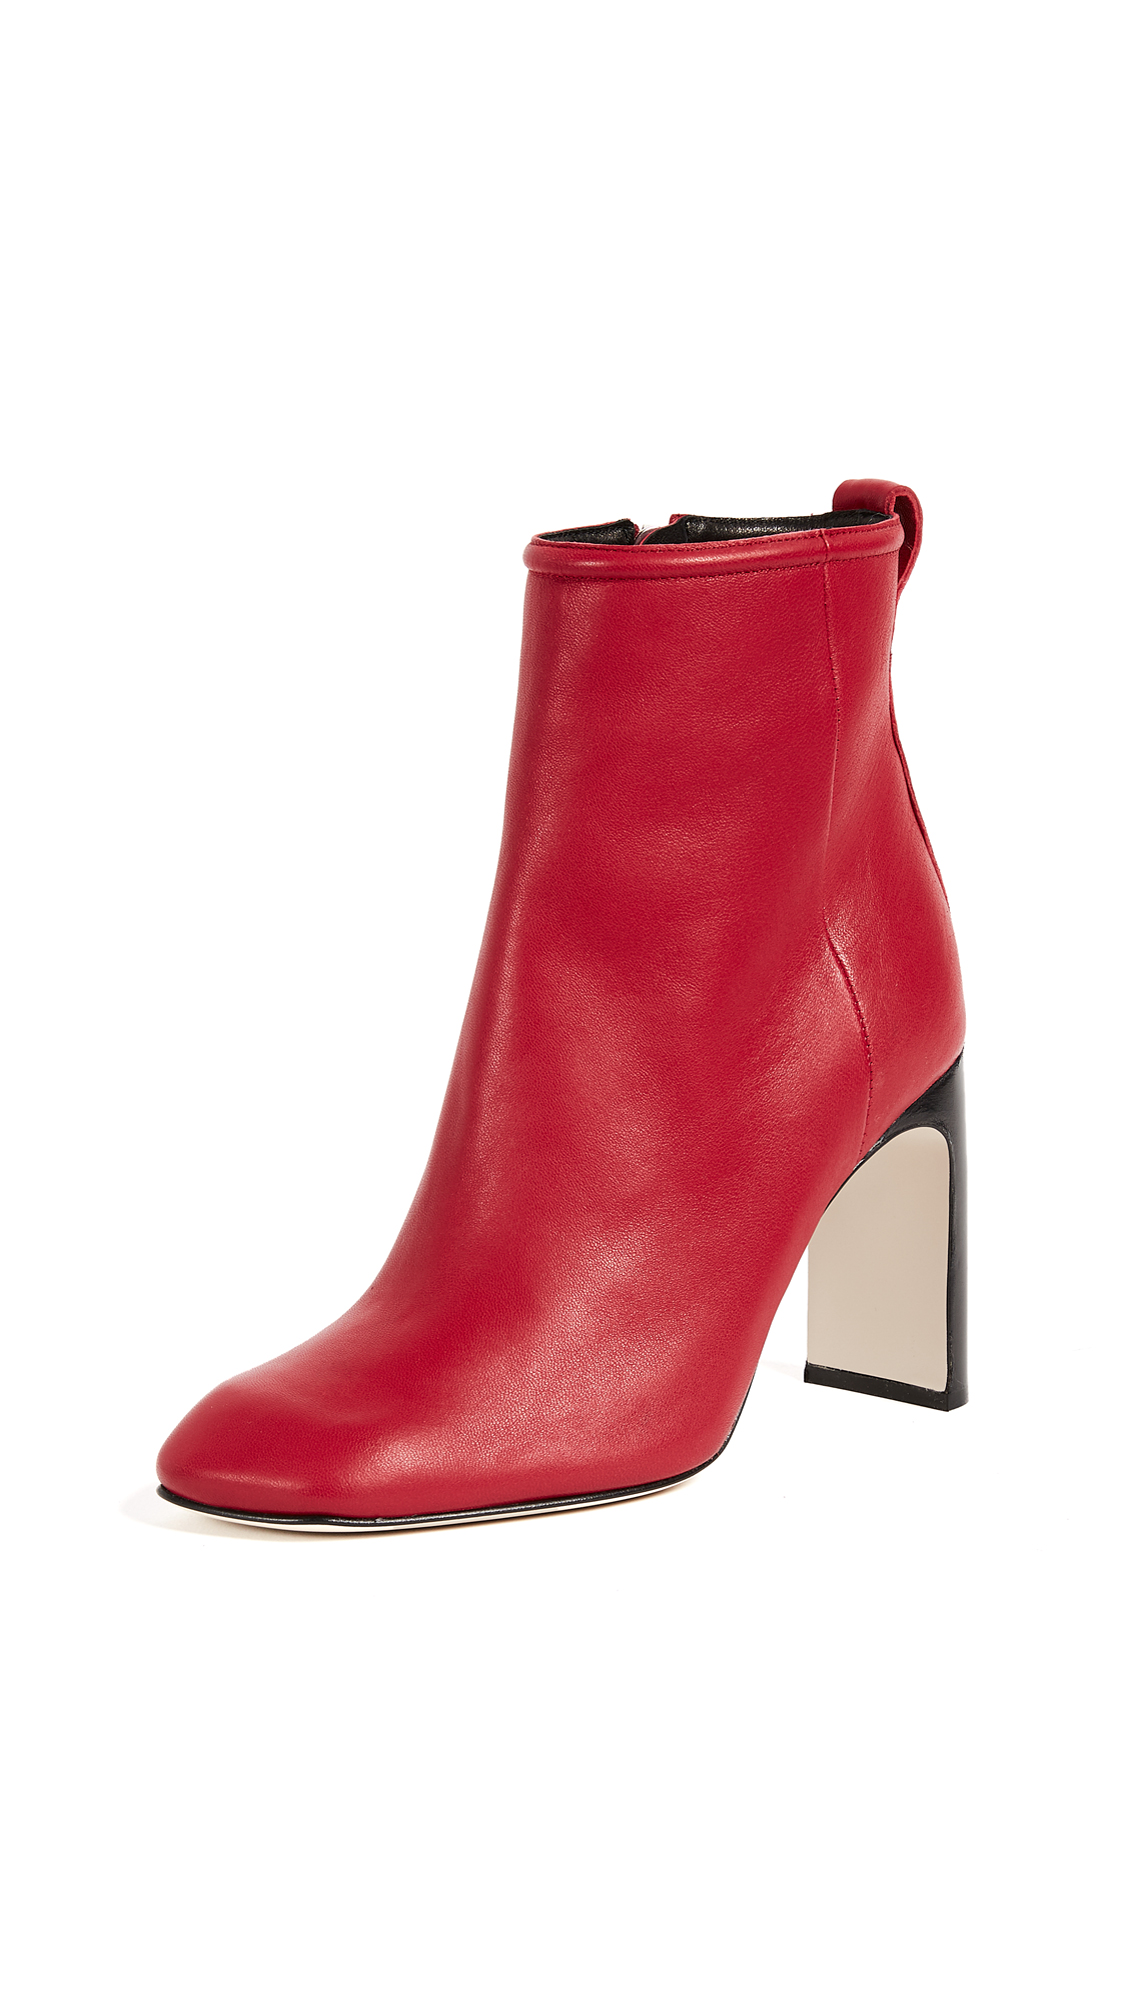 Photo of Rag & Bone Ellis Booties online shoes sales